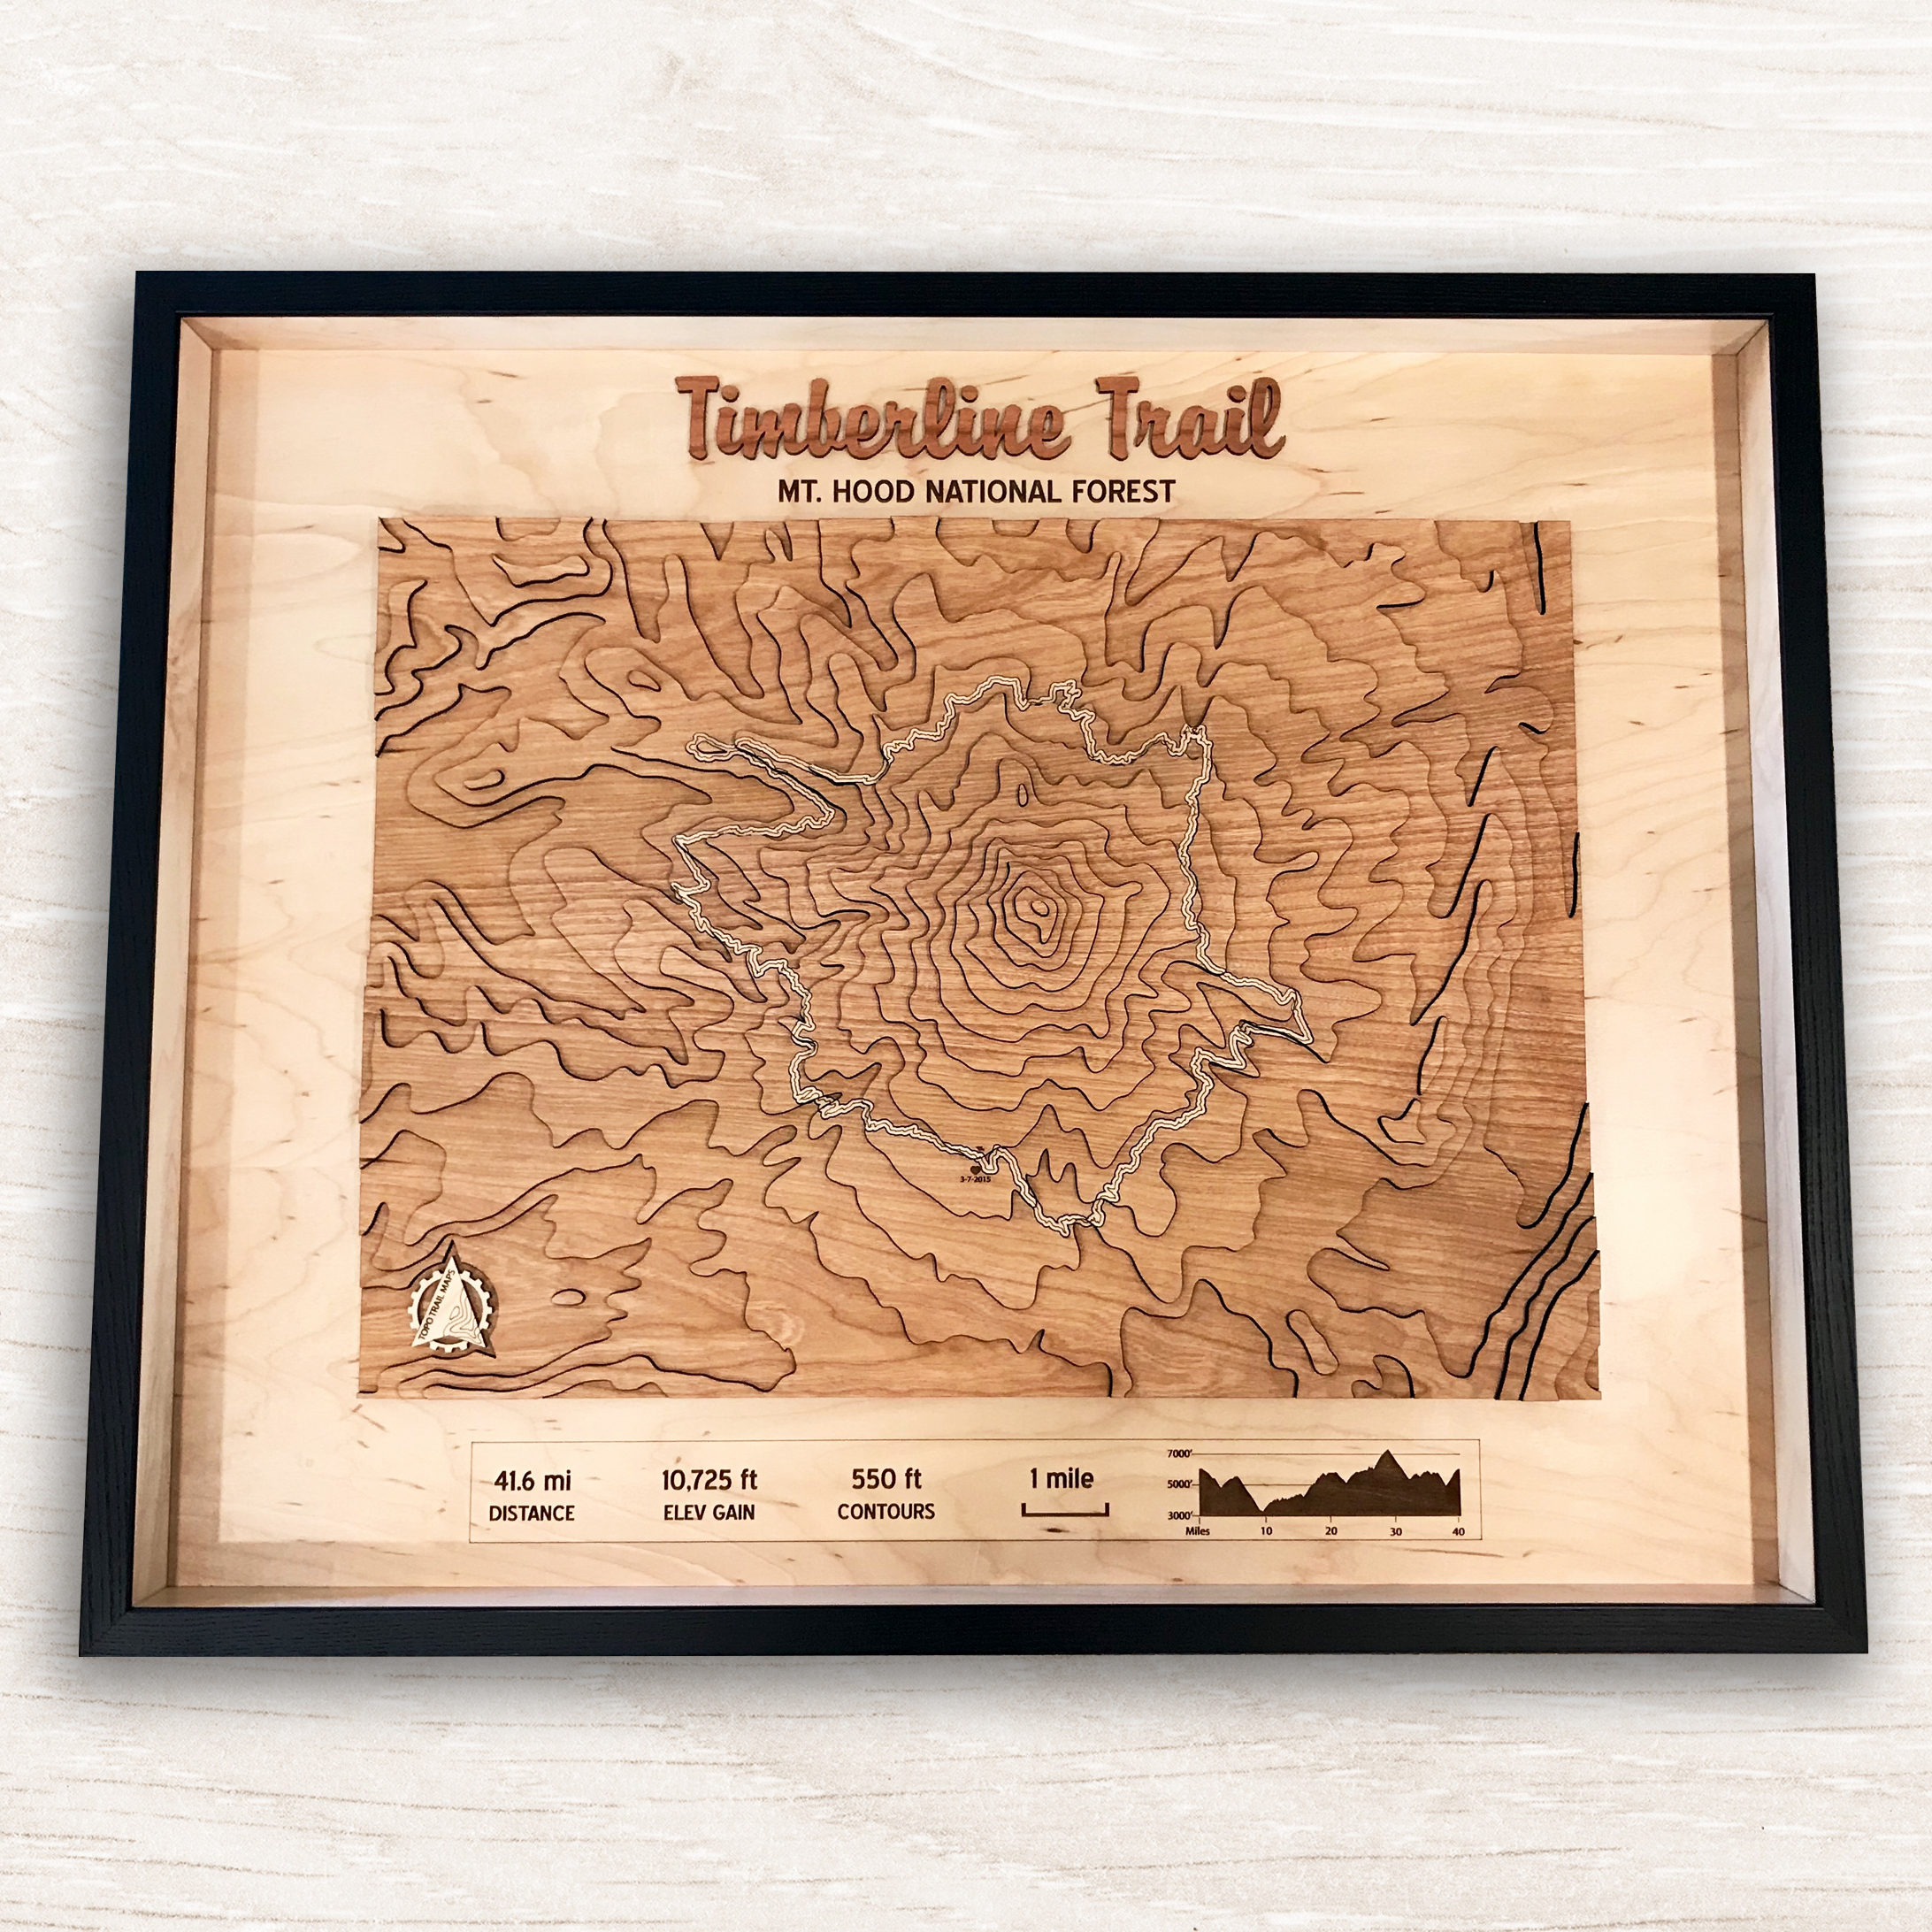 3-D Pro Series Maps — Topo Trail Maps